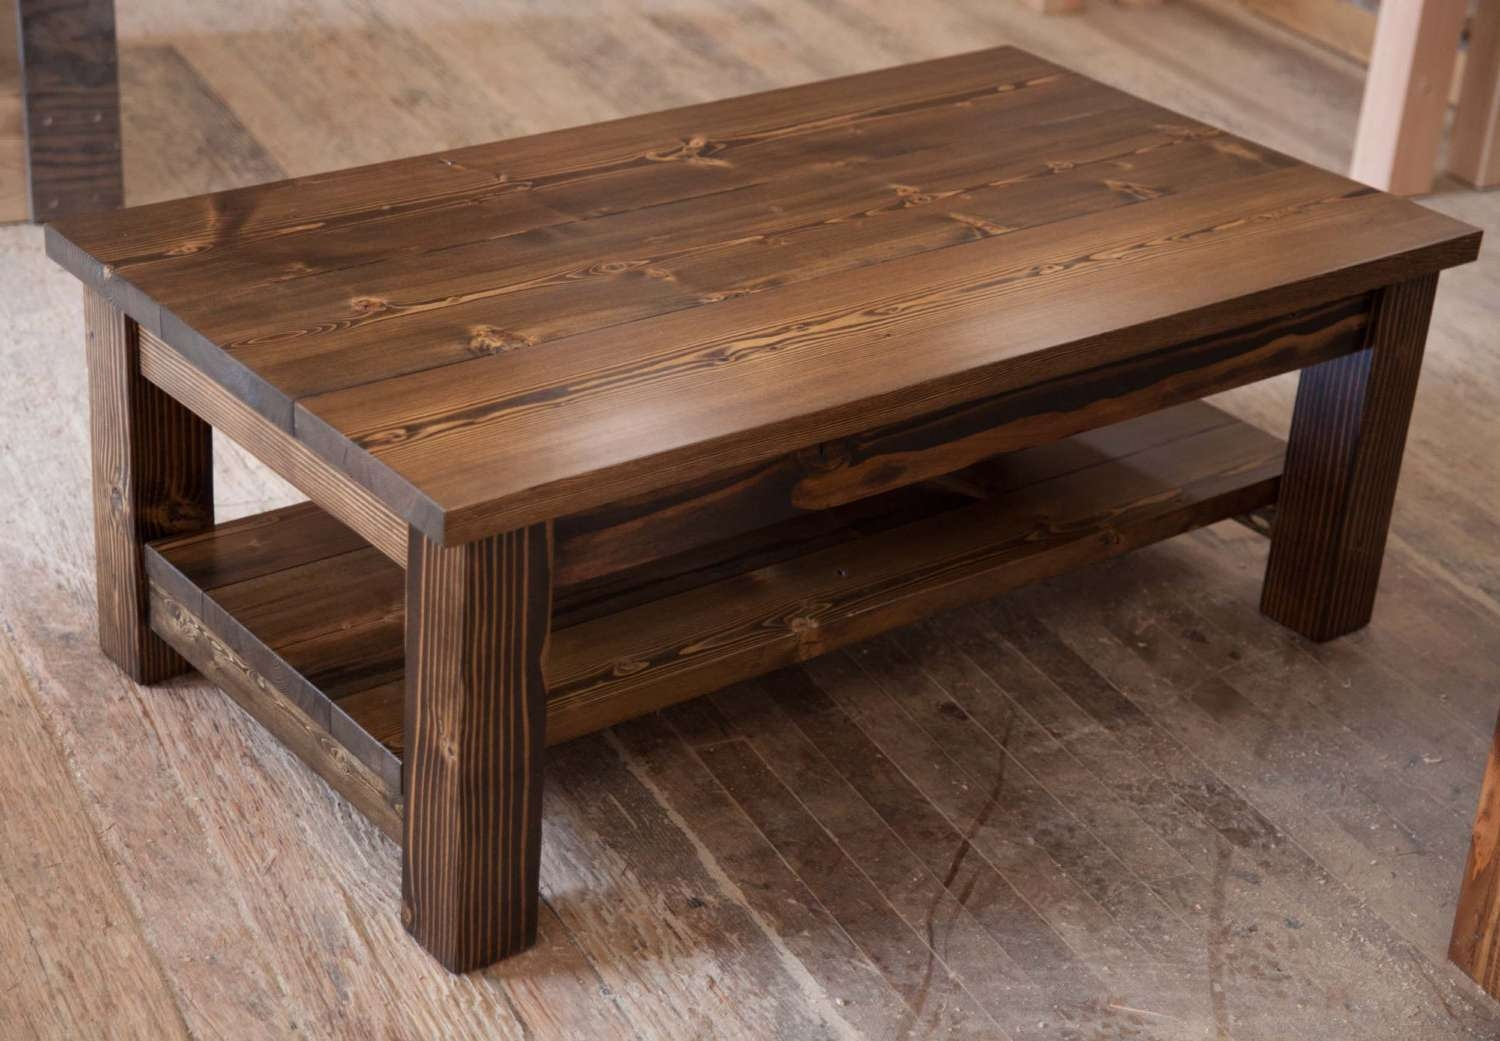 Coffee Table : Solid Wood Coffee Table Awesome Rustic Tables With With Regard To Well Known Coffee Tables Solid Wood (View 4 of 20)